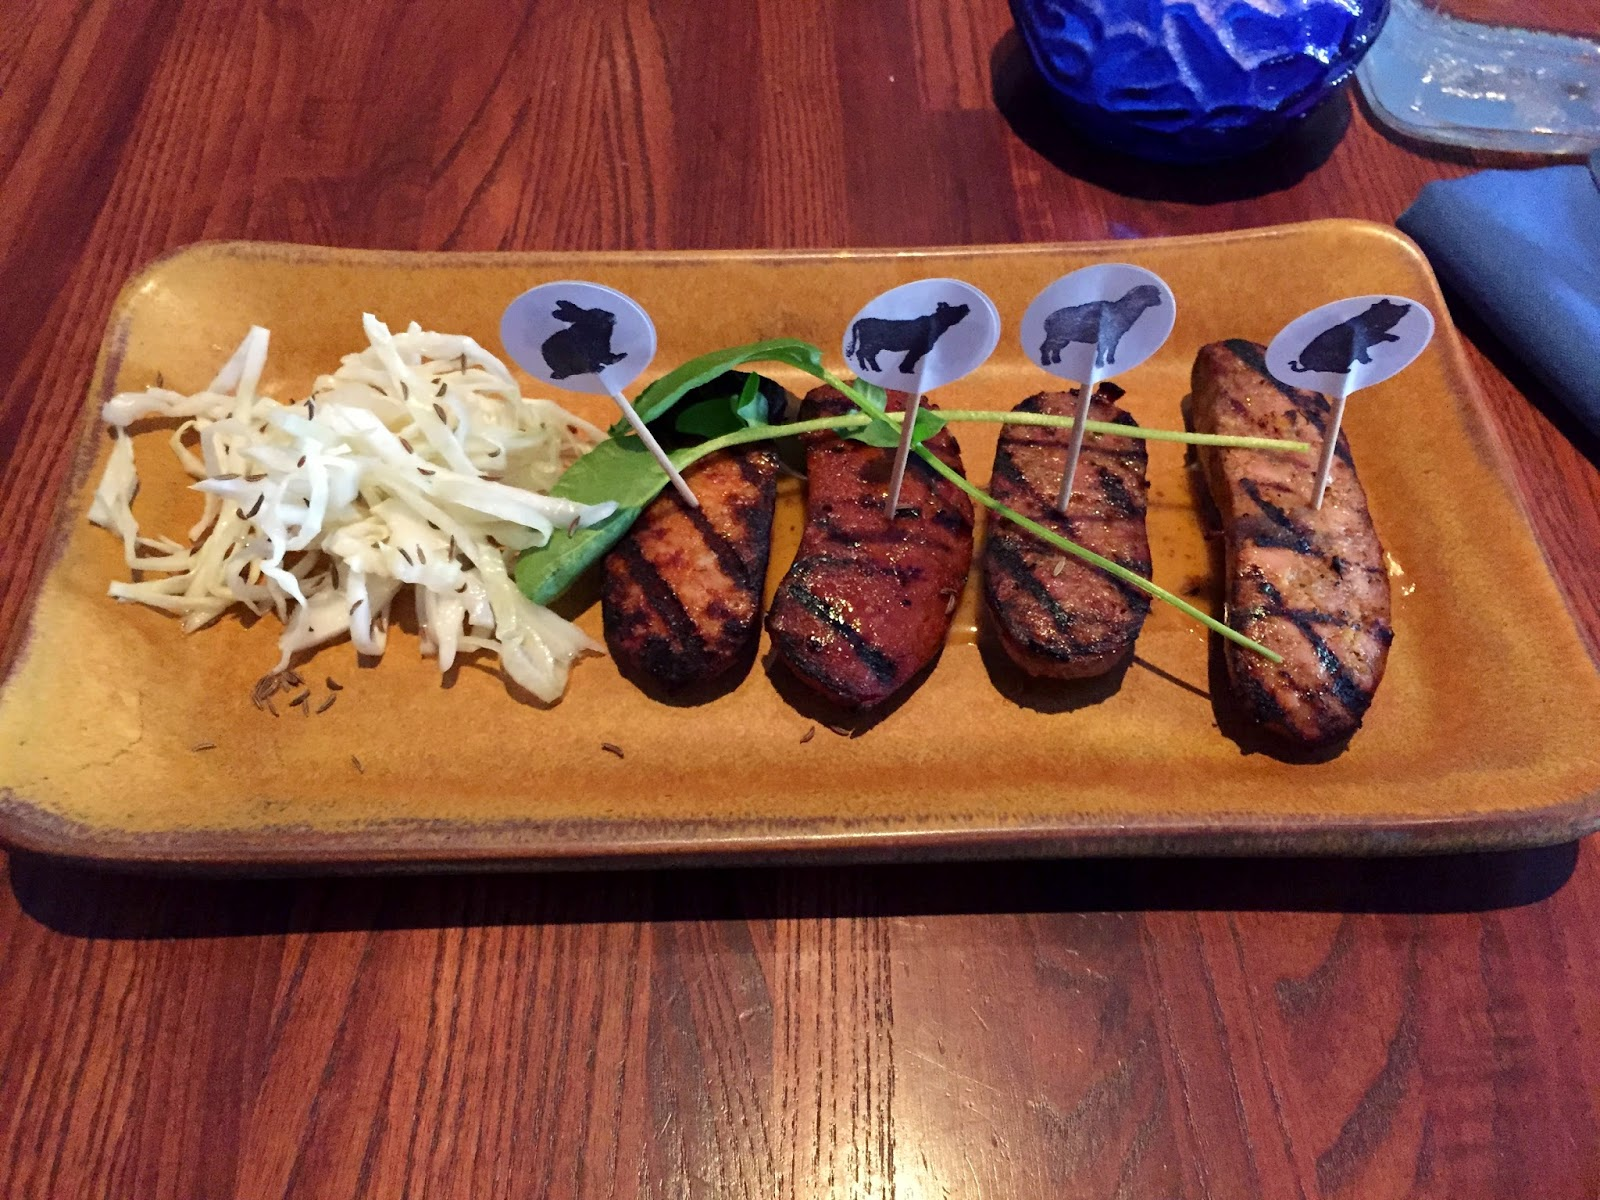 Smoked Sausage appetizer from Smoke - Dallas